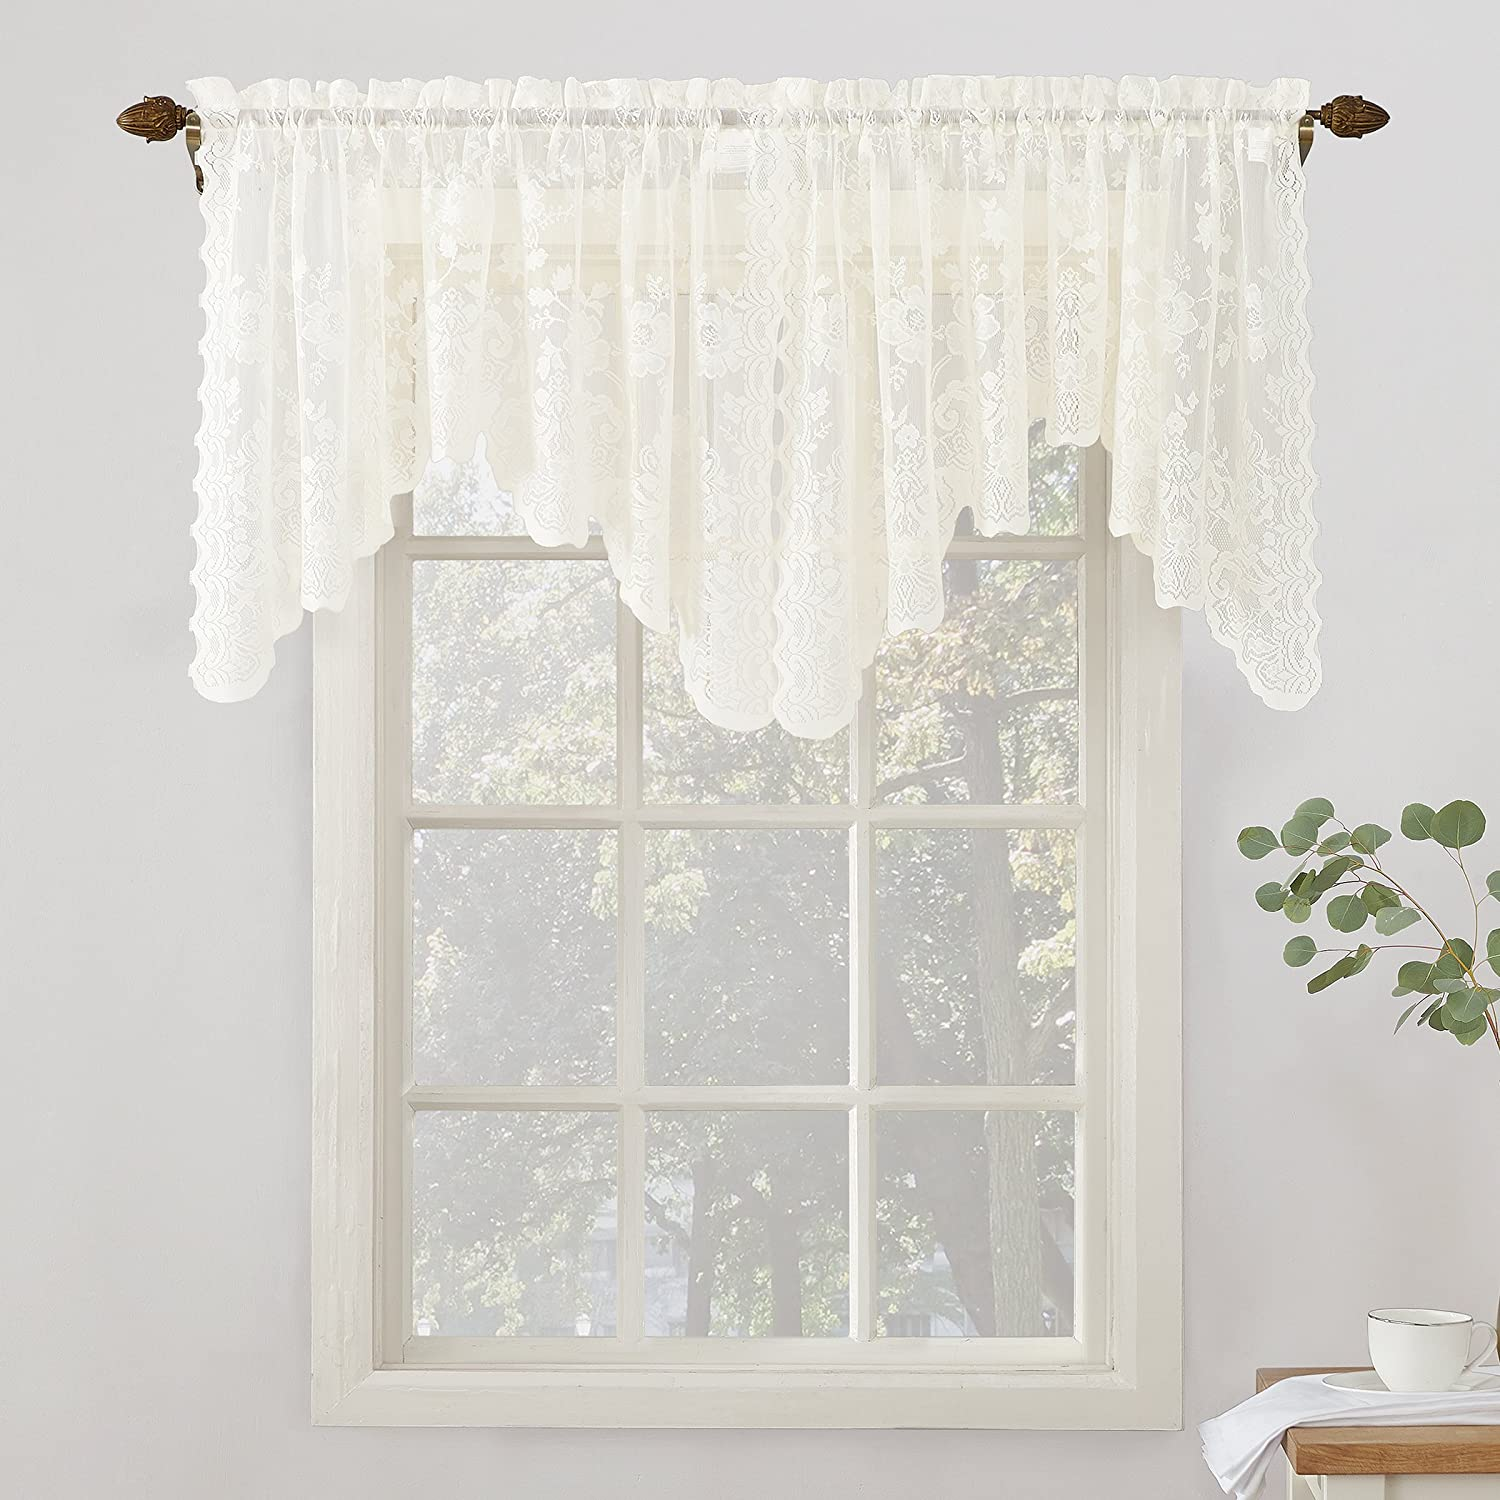 """No. 918 Alison Floral Lace Sheer Rod Pocket Curtain Valance, 58"""" x 32"""", Ivory"""